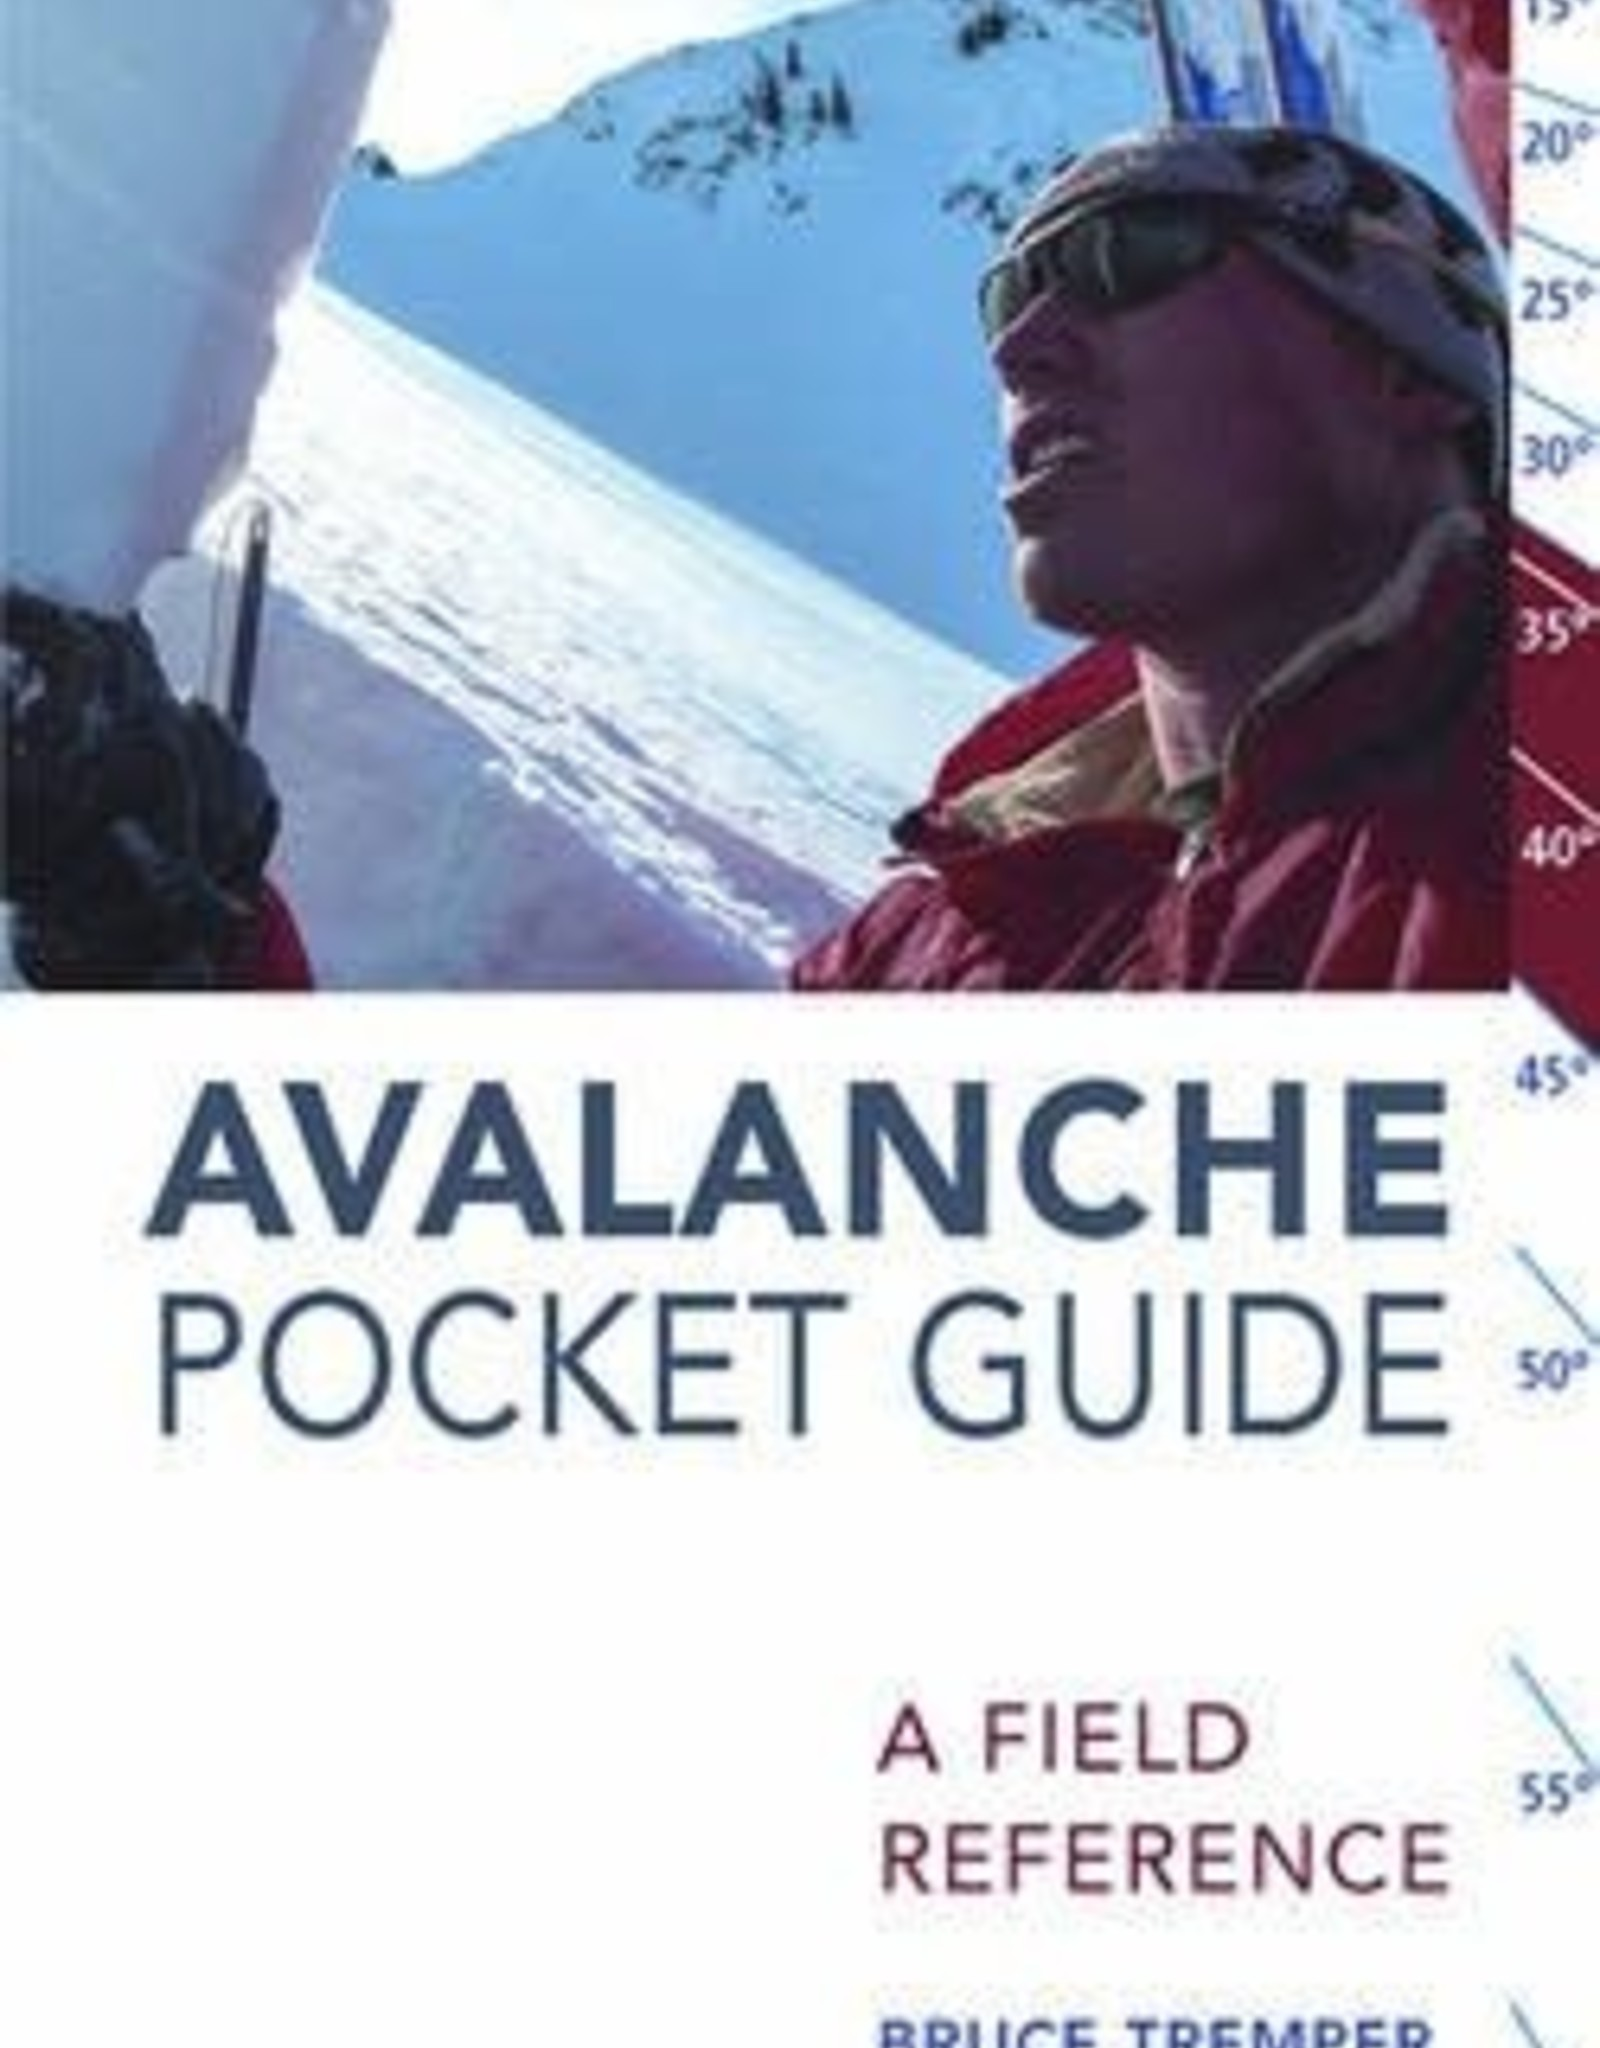 MOUNTAINEERS BOOKS Avalanche Pocket Guide